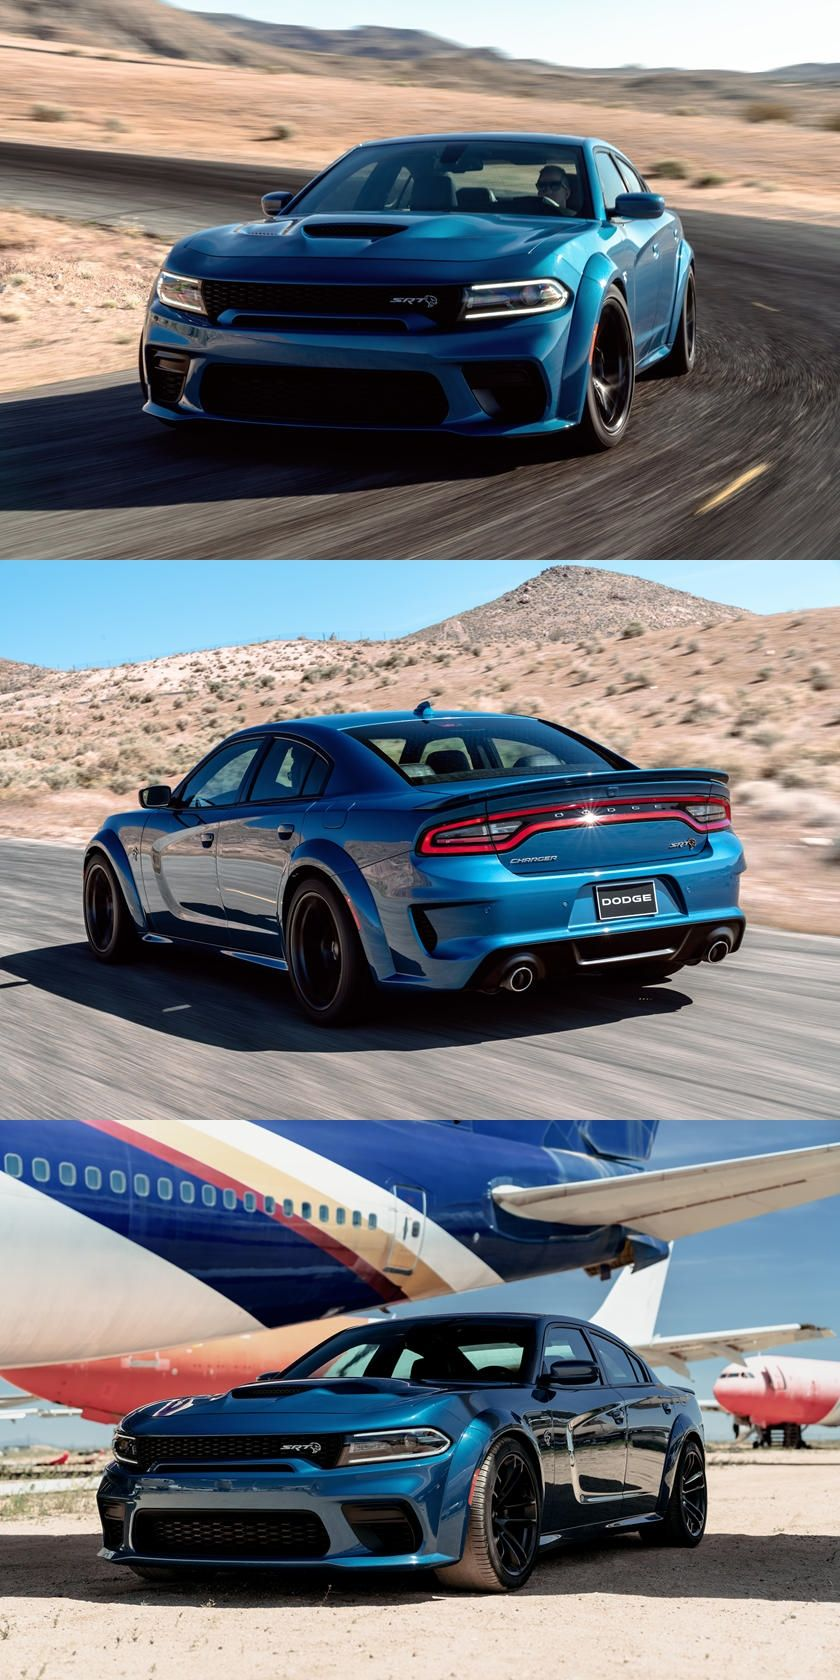 The Dodge Charger Hellcat Just Got More Powerful Dodge Srt Is Making The Hellcat Daytona S 10 Horsepower Bump Per In 2020 Dodge Charger Hellcat Dodge Charger Hellcat